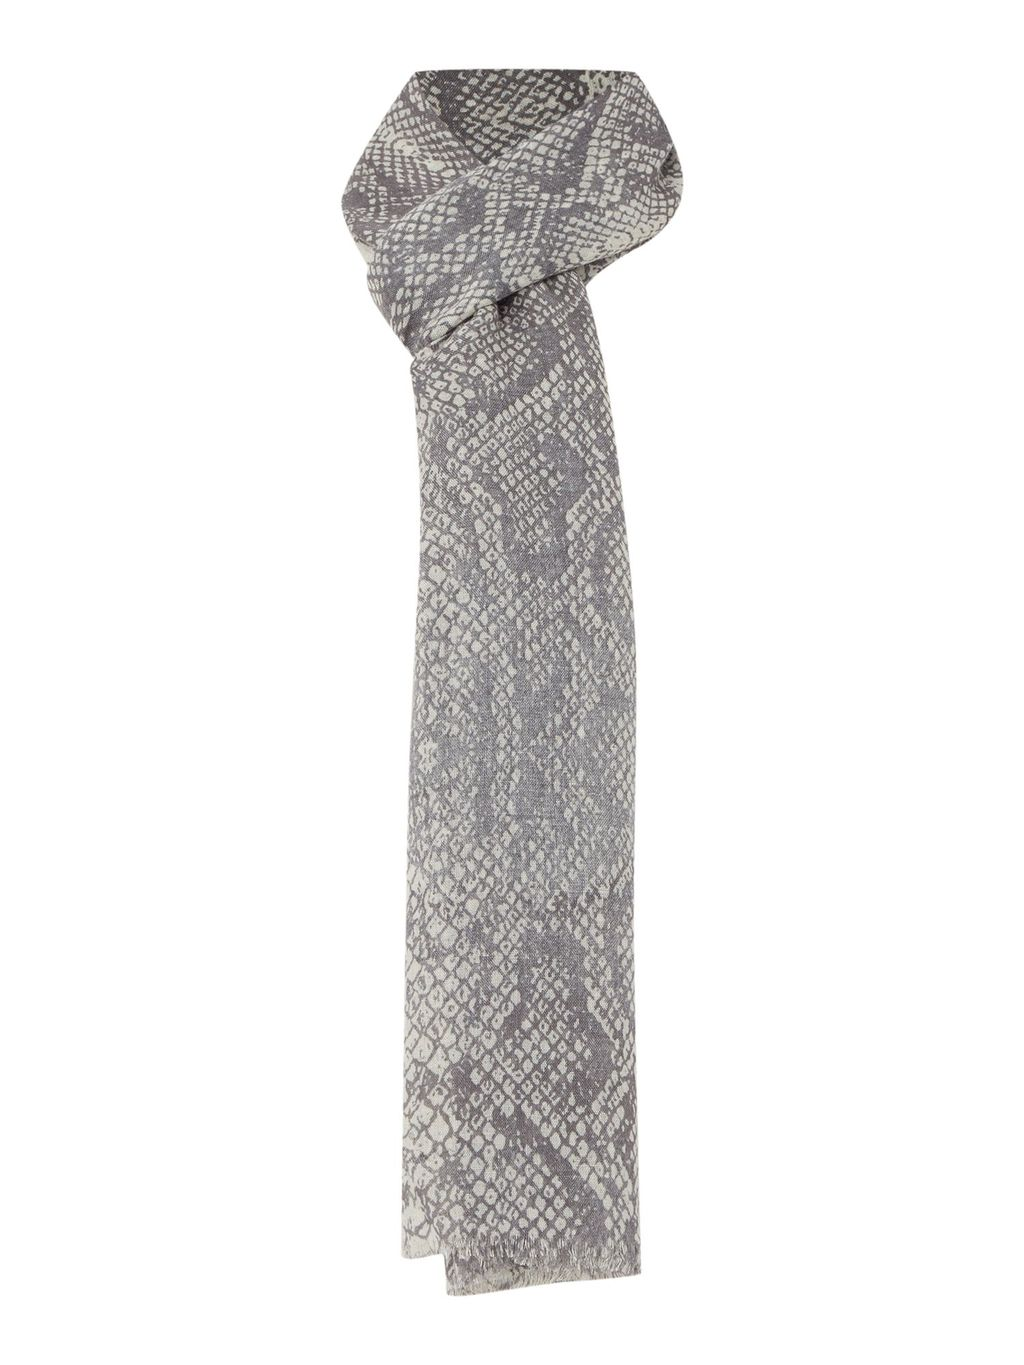 Snakeskin Print Scarf, Multi Coloured - predominant colour: mid grey; occasions: casual, creative work; type of pattern: small; style: regular; size: standard; material: fabric; pattern: animal print; season: s/s 2016; wardrobe: highlight